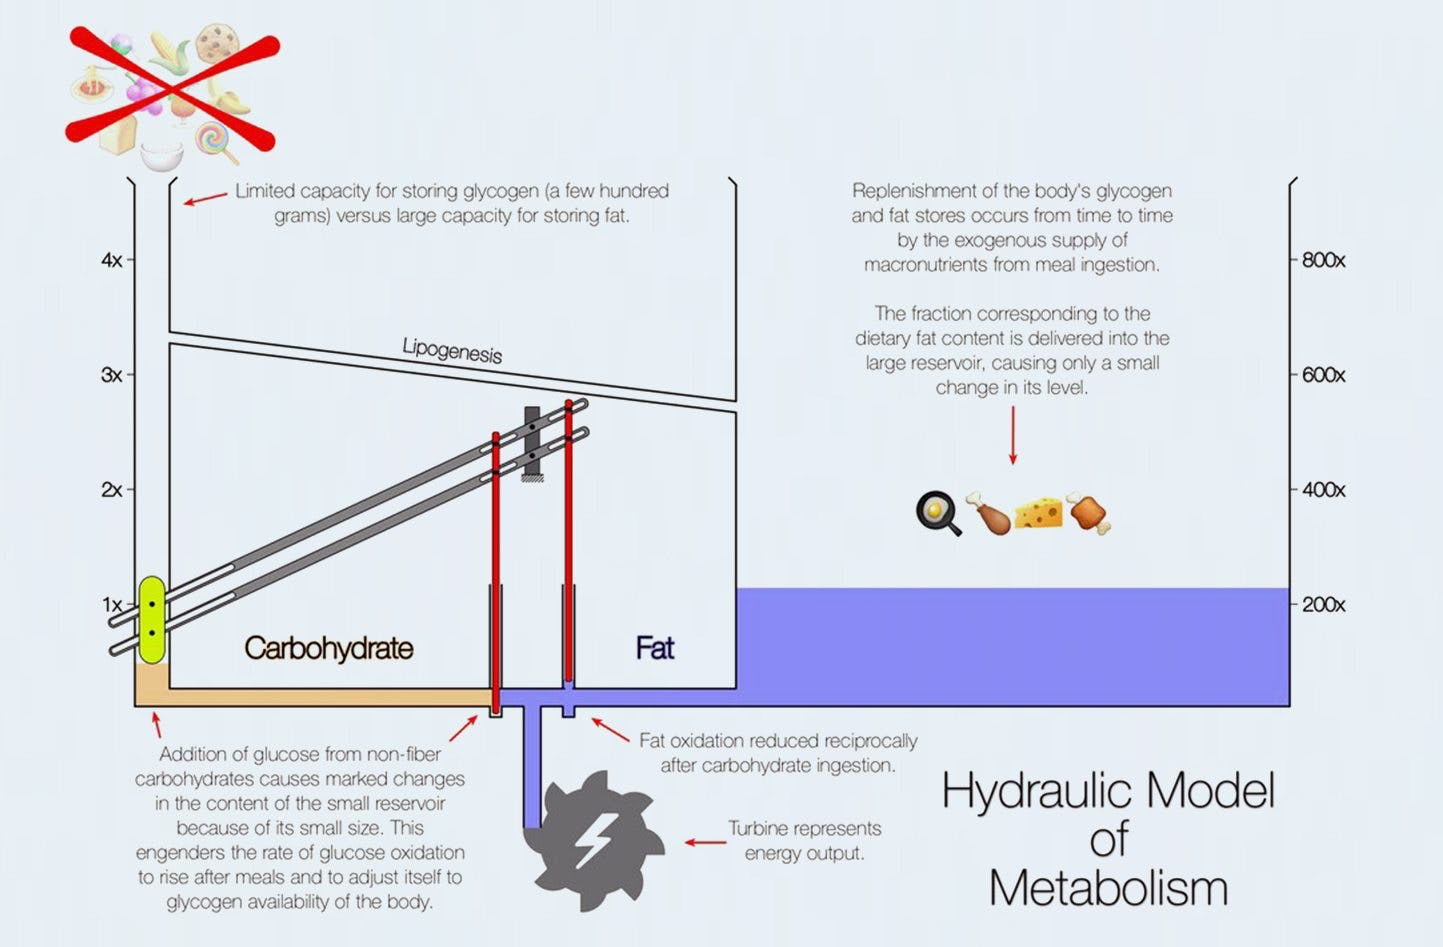 <strong>Carb vs. Fat Metabolism</strong> – The Dr. Ted Naiman Hydraulic Model